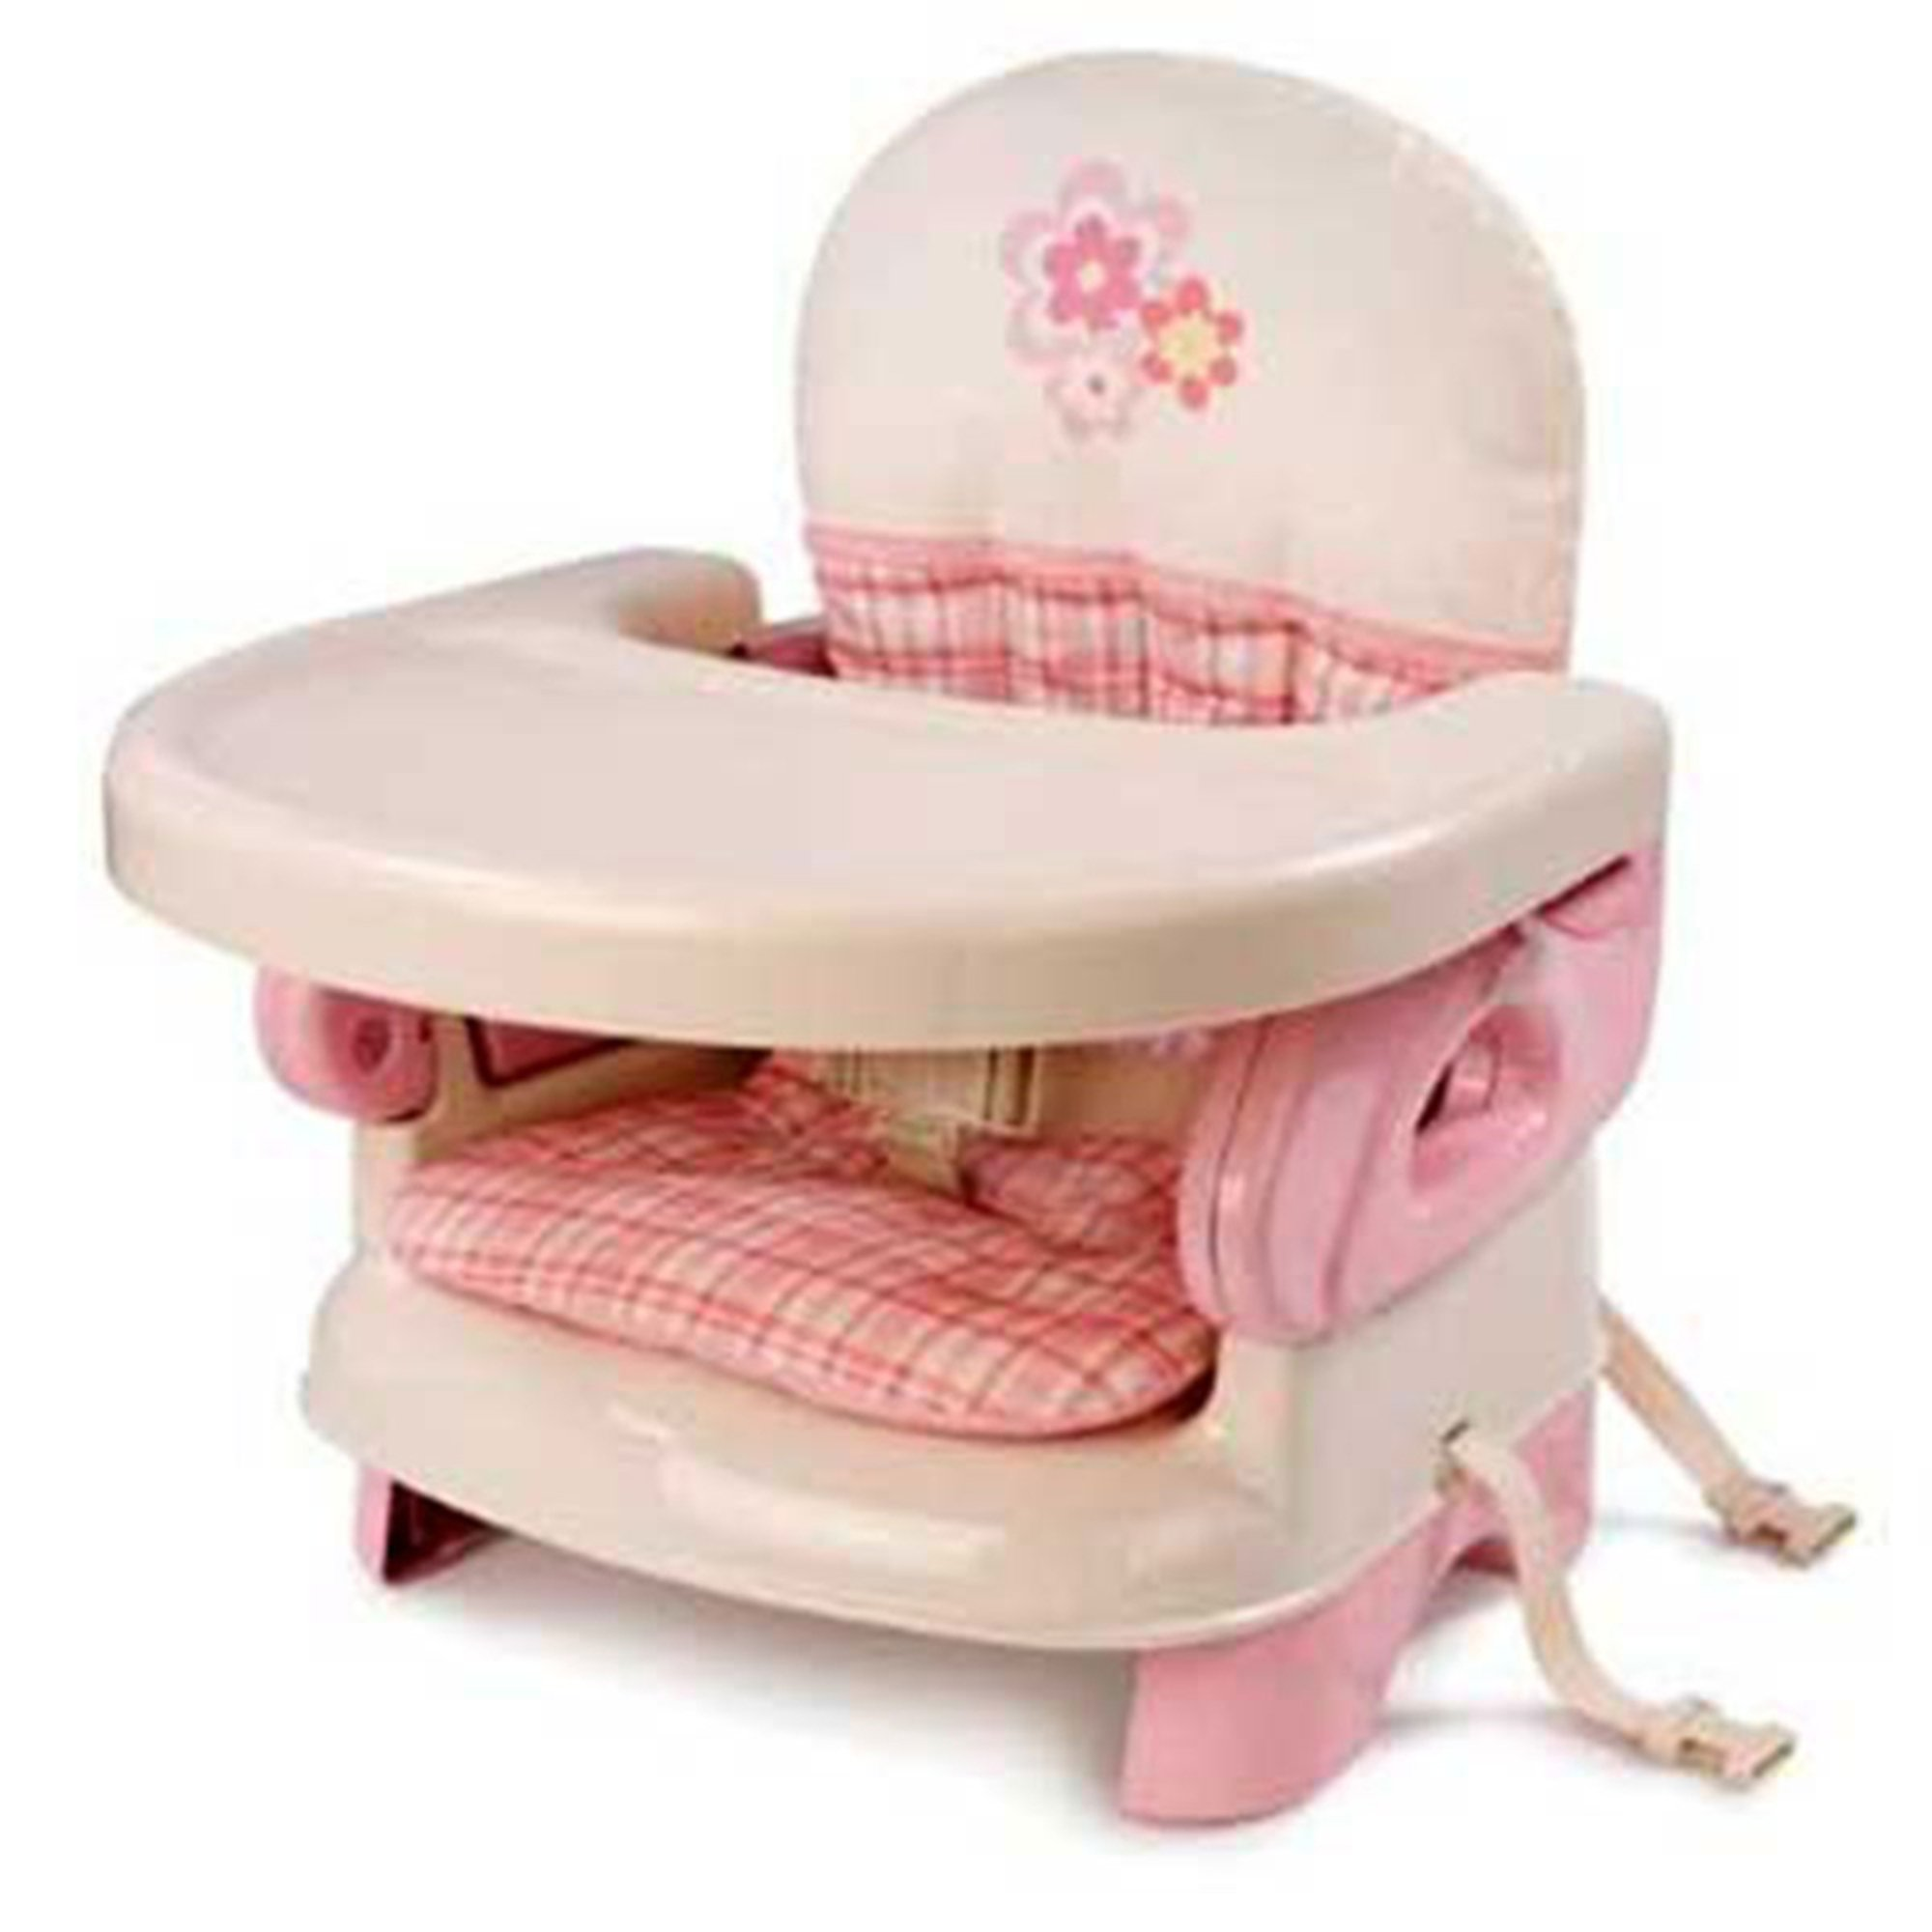 Remarkable Summer Infant Deluxe Comfort Folding Booster Seat Search Creativecarmelina Interior Chair Design Creativecarmelinacom